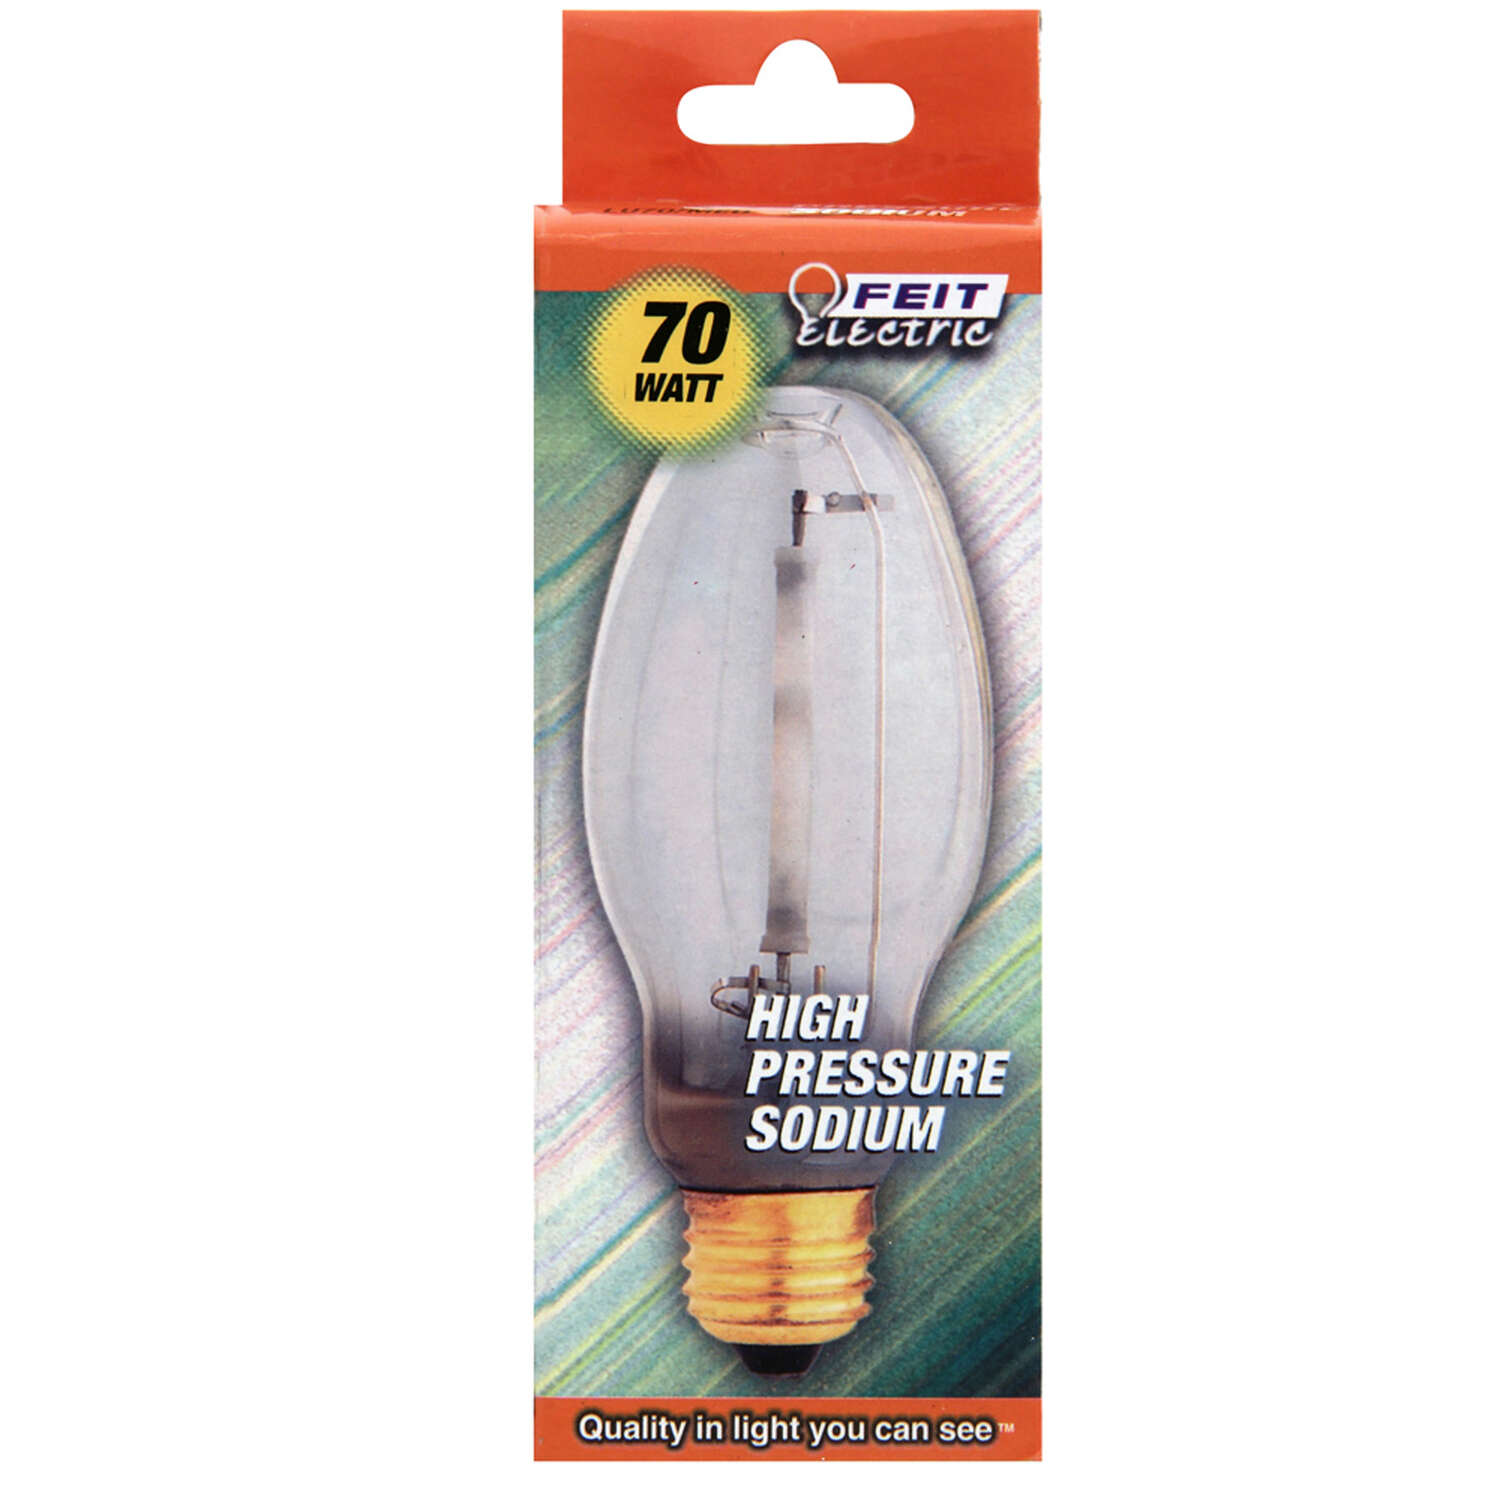 Feit Electric  70 watt ED17  HID Bulb  6000 lumens Daylight  High Pressure Sodium  1 pk